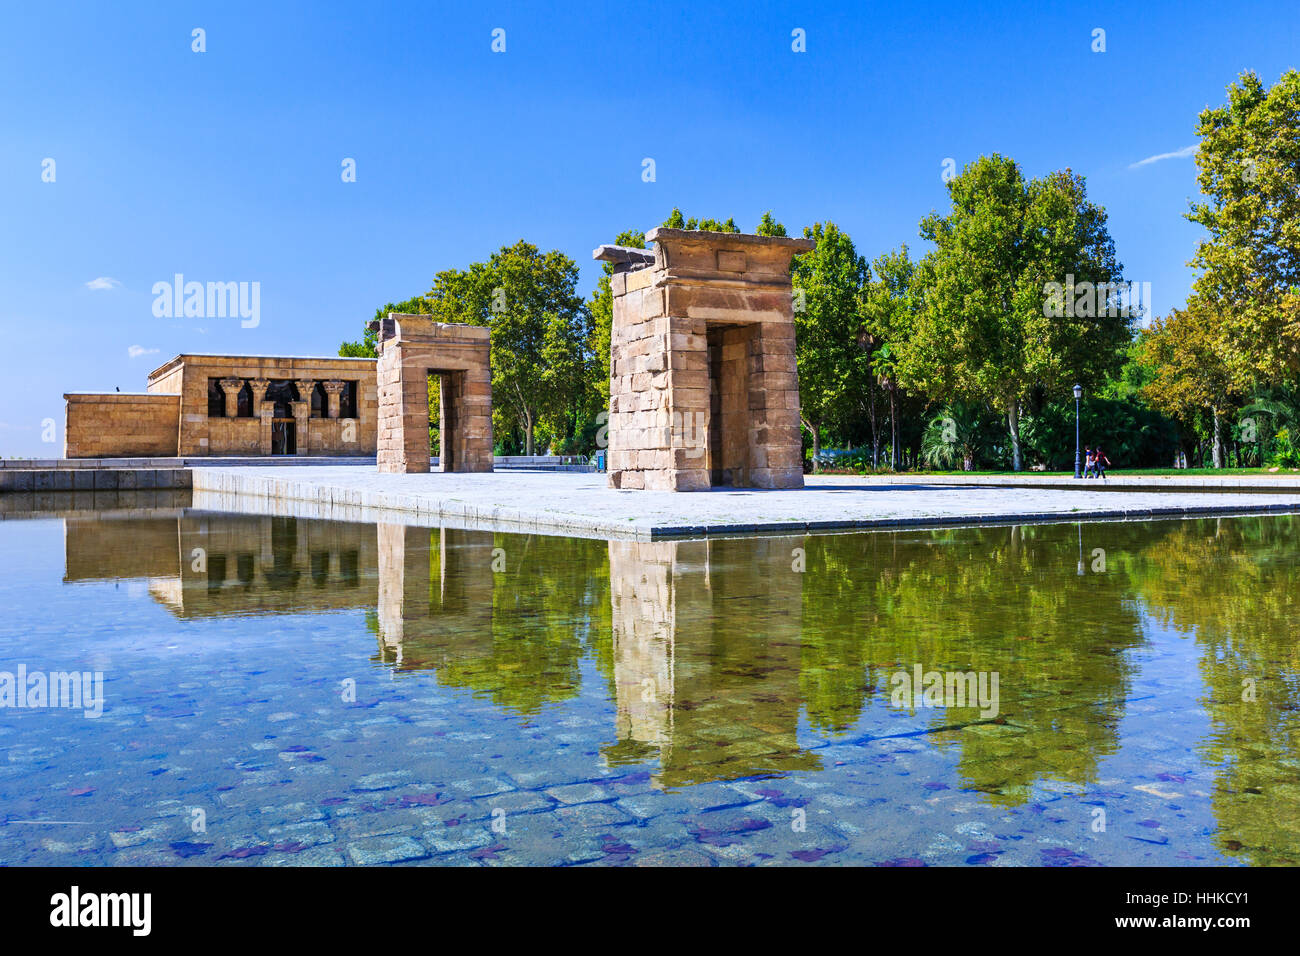 Madrid, Spain. The Temple of Debod (Templo de Debod) an ancient Egyptian temple. - Stock Image